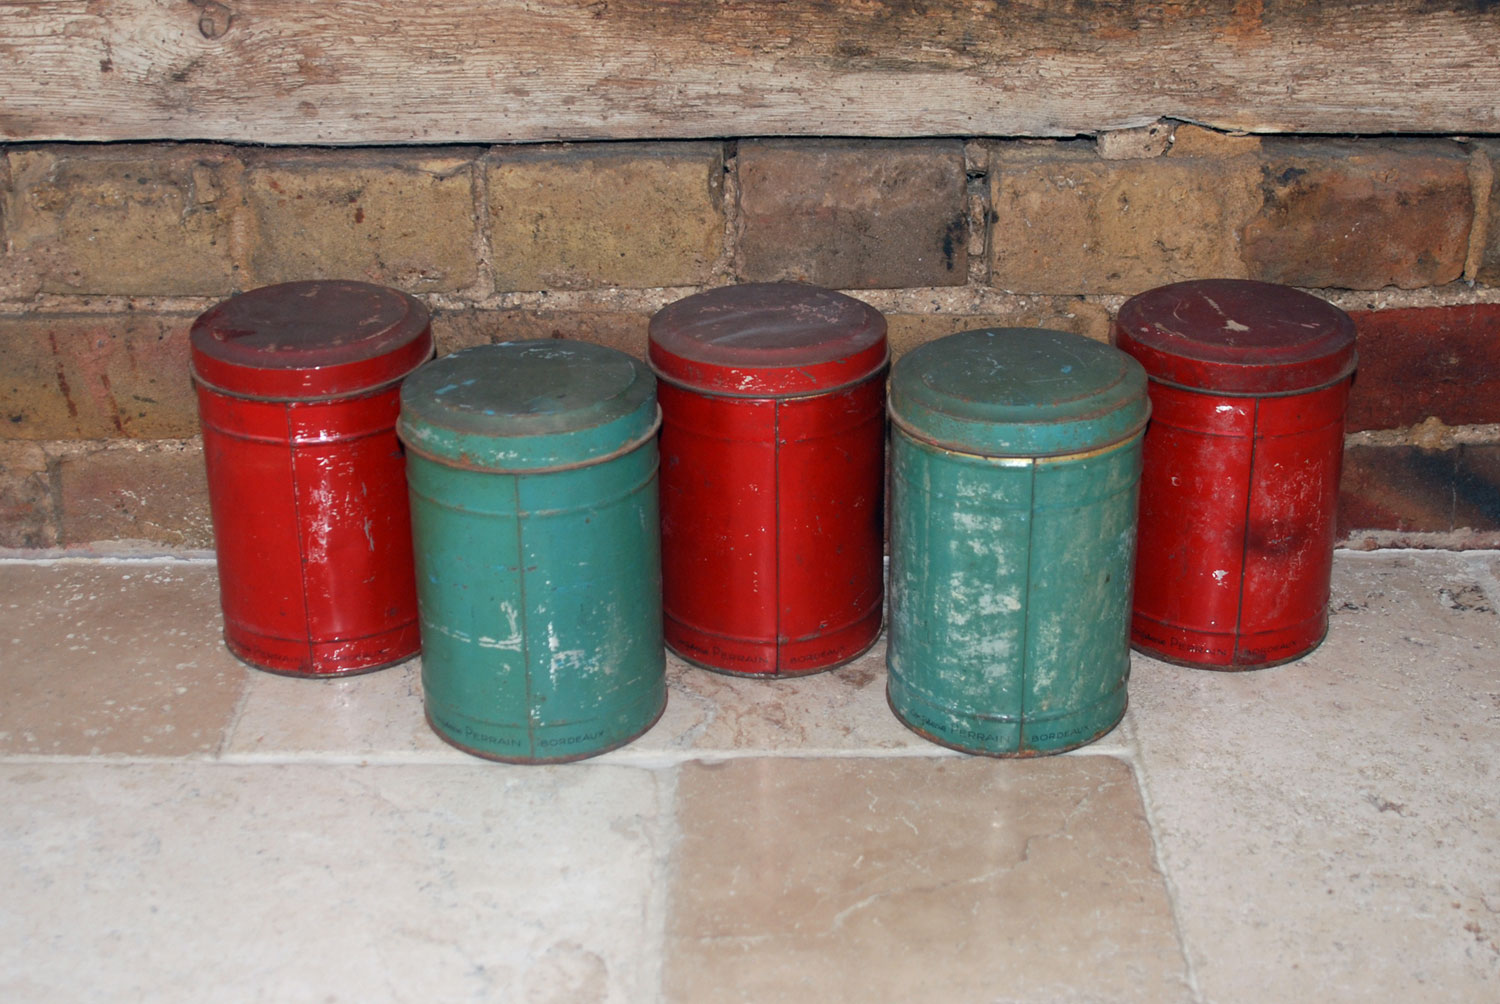 antique french toleware confectioners tins toleware kitchen storage jars shabby chic rustic